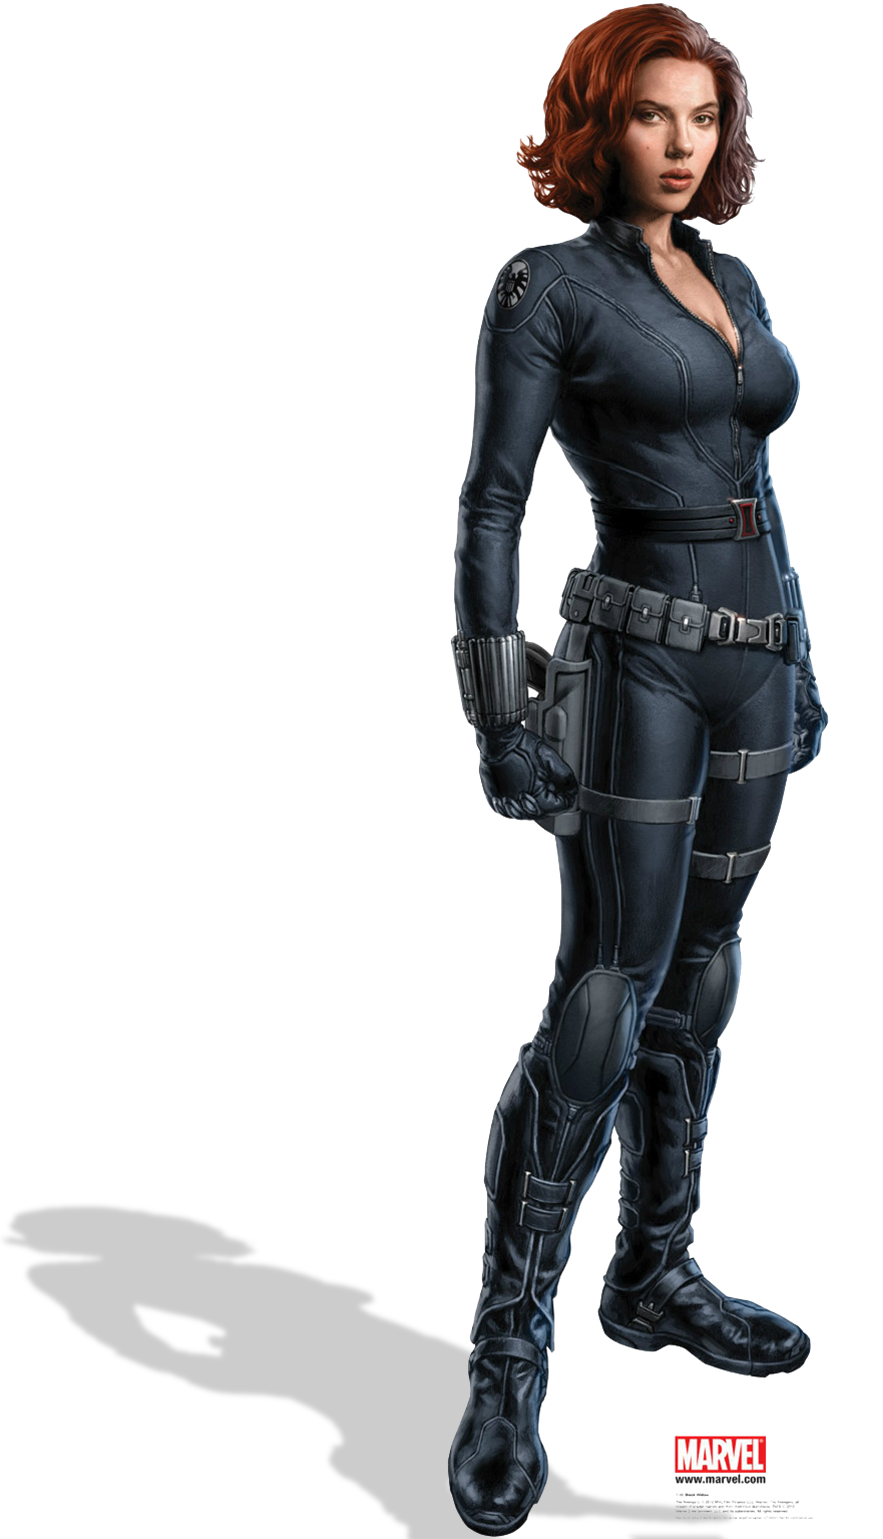 Civil War Black Widow Char ar